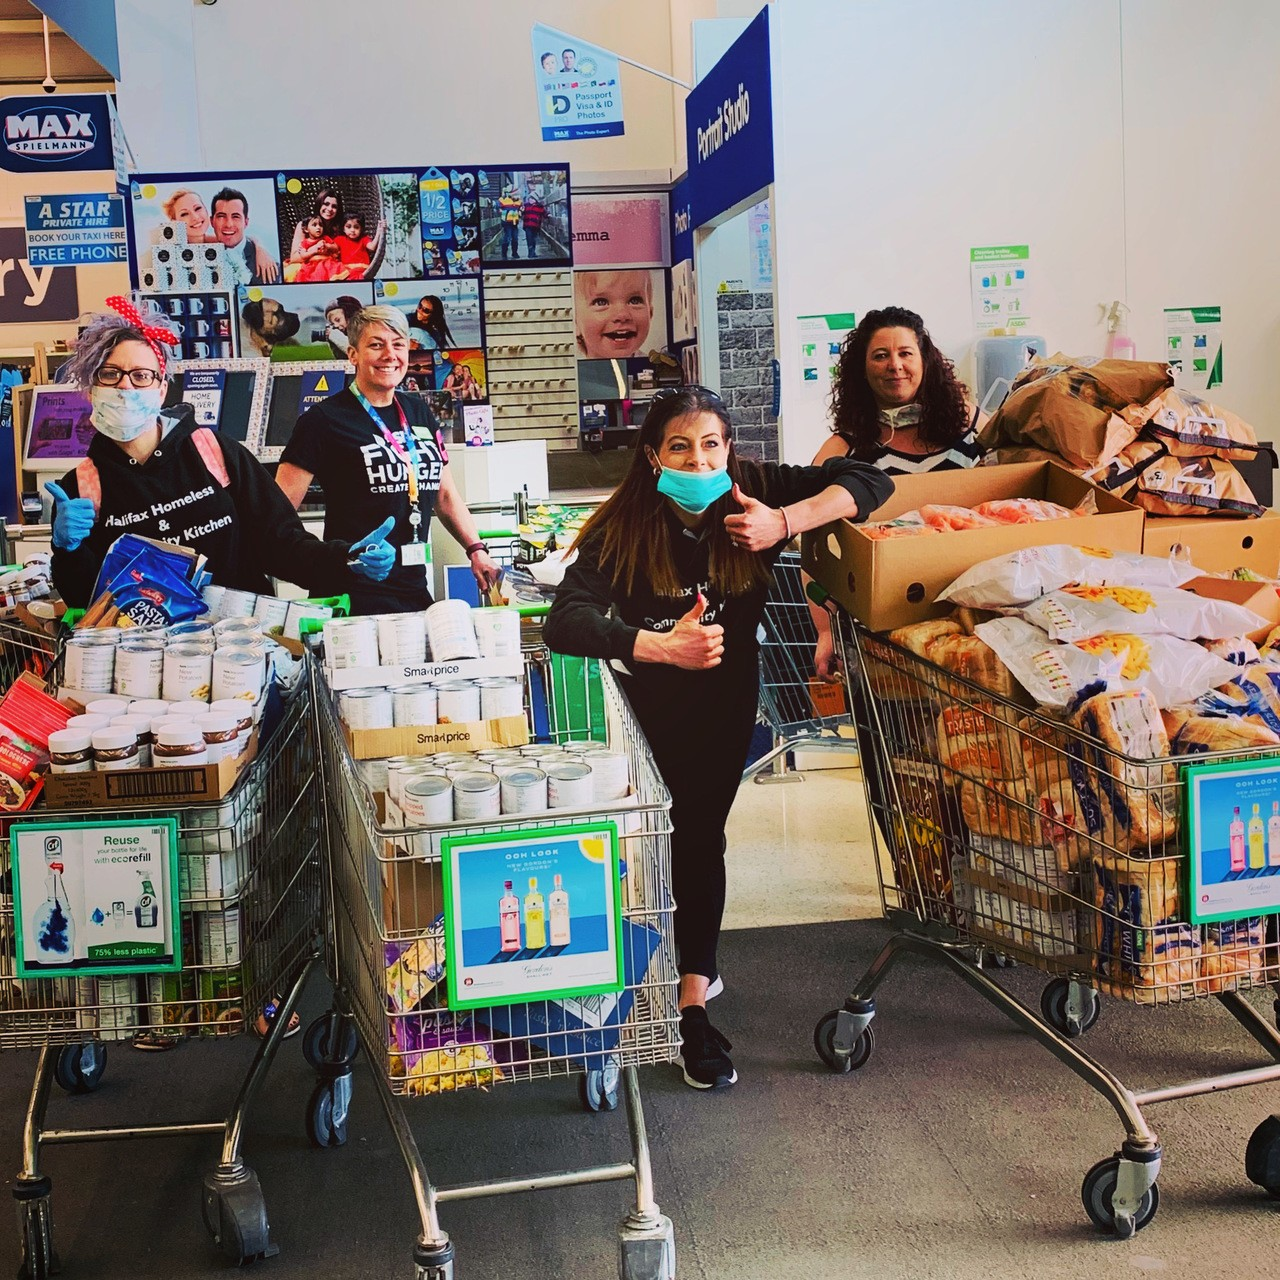 Helping vulnerable families in our community | Asda Halifax